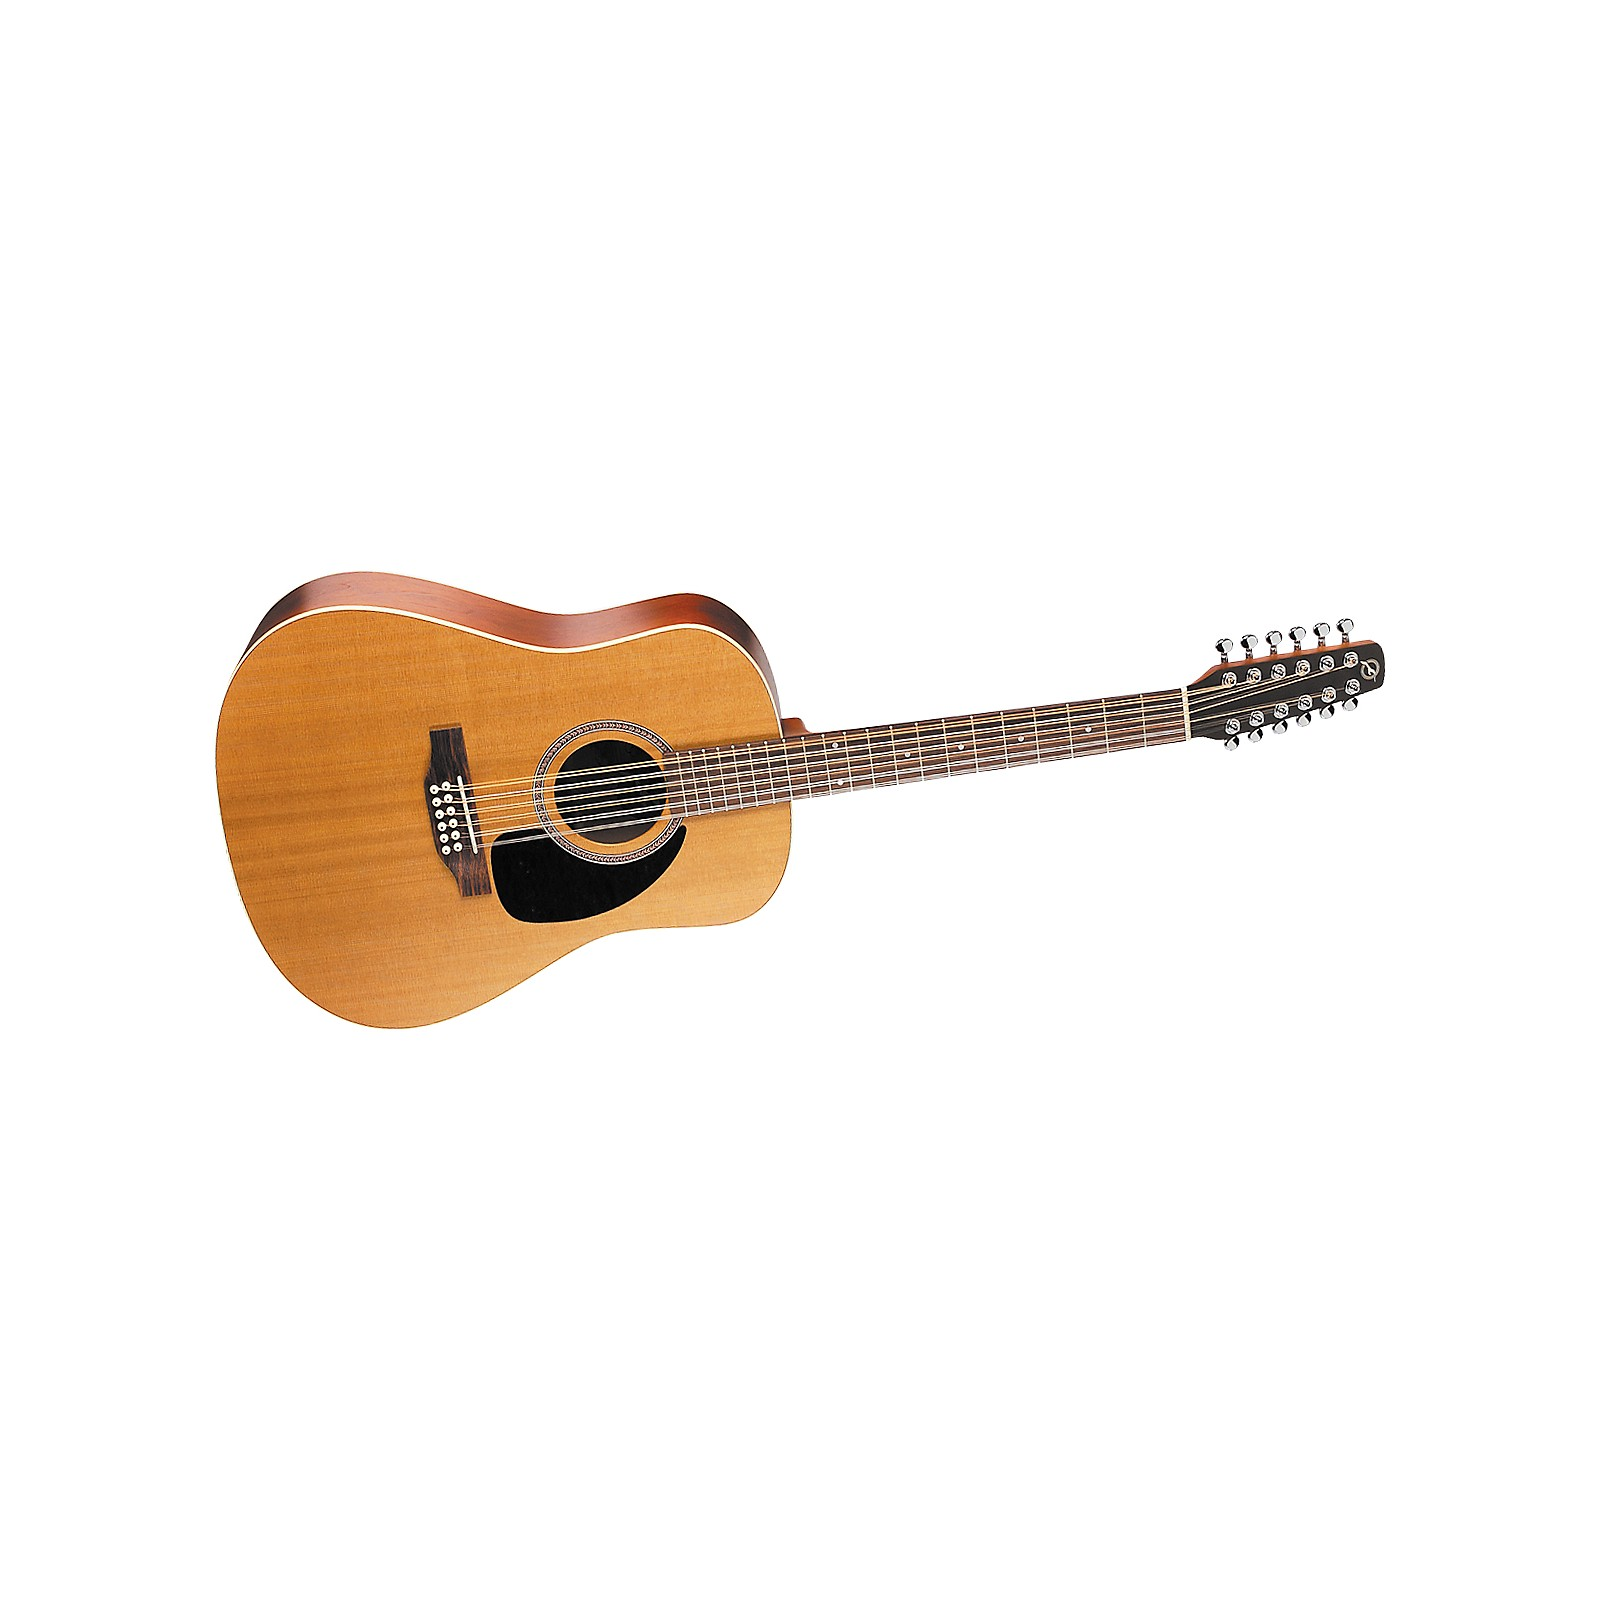 Seagull S12+ 12-String Acoustic Guitar